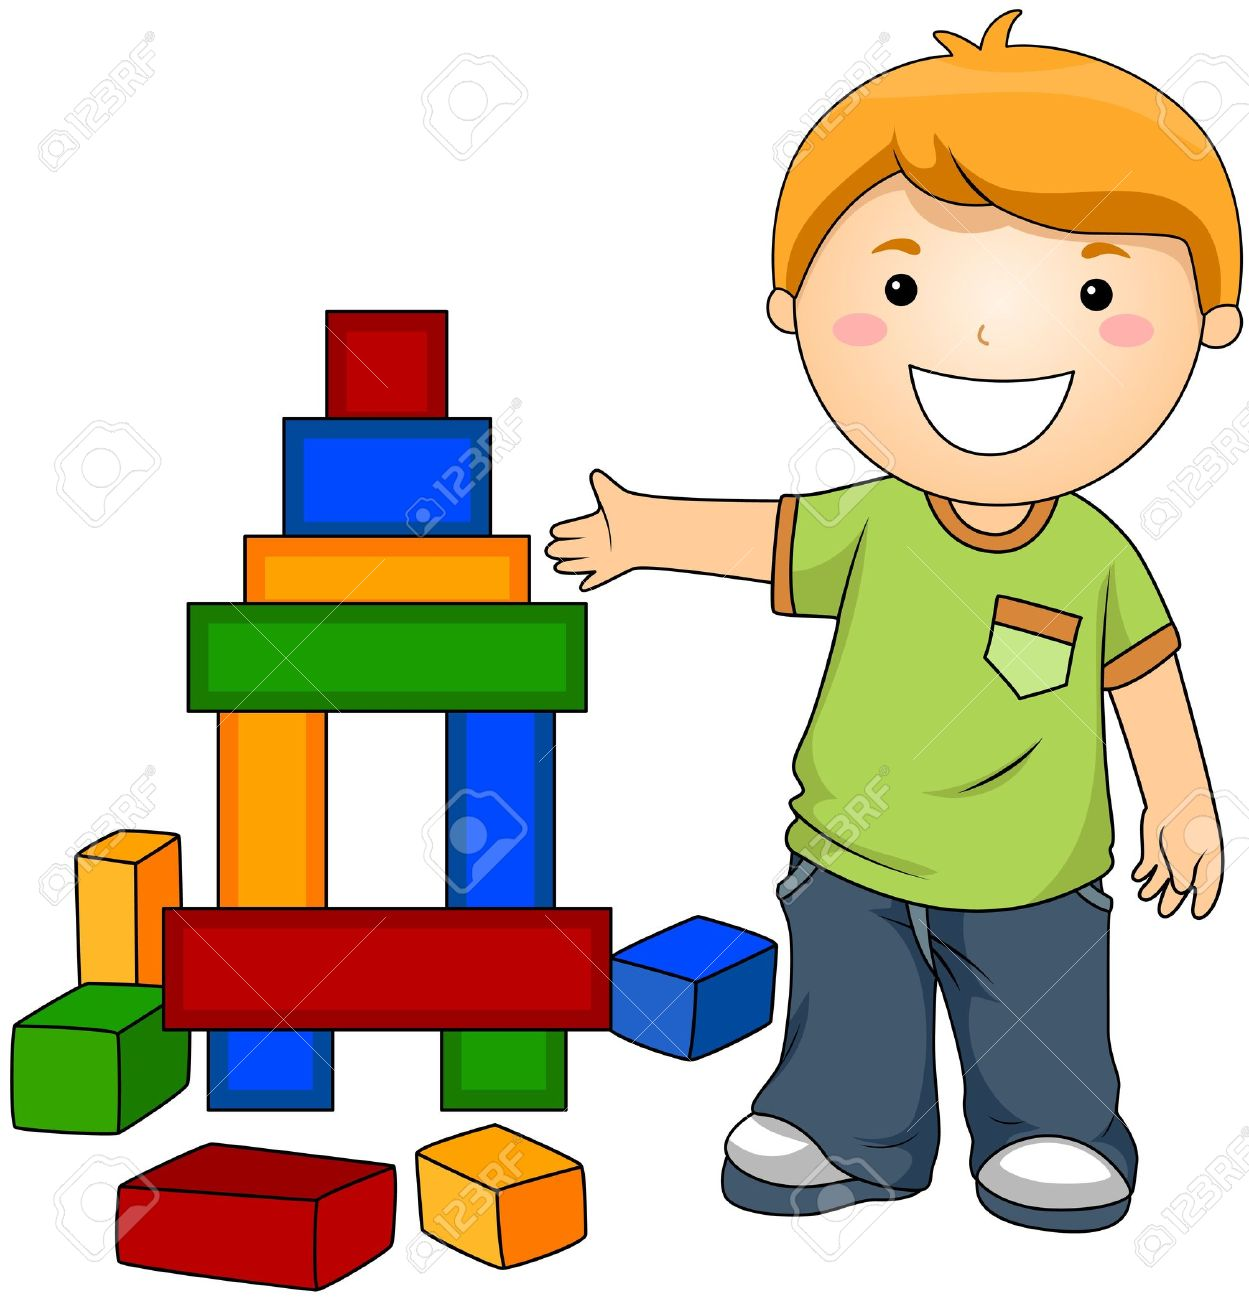 Toys Clipart   Free download best Toys Clipart on ...